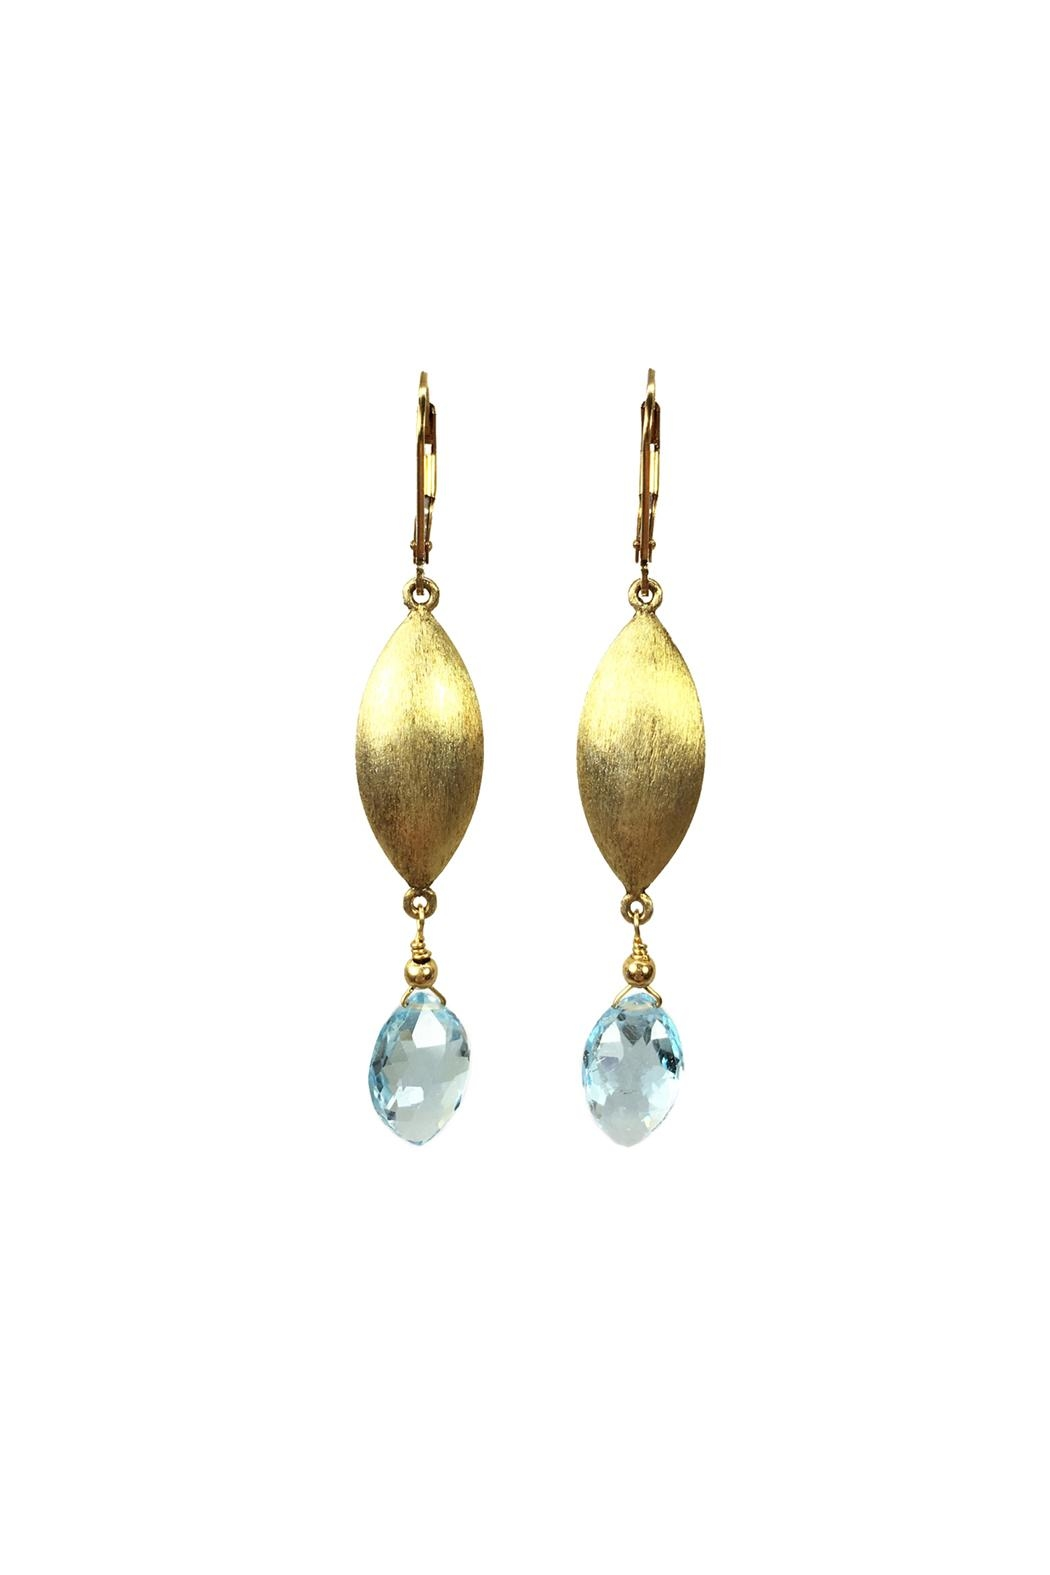 Melinda Lawton Jewelry Gold & Blue Topaz - Main Image